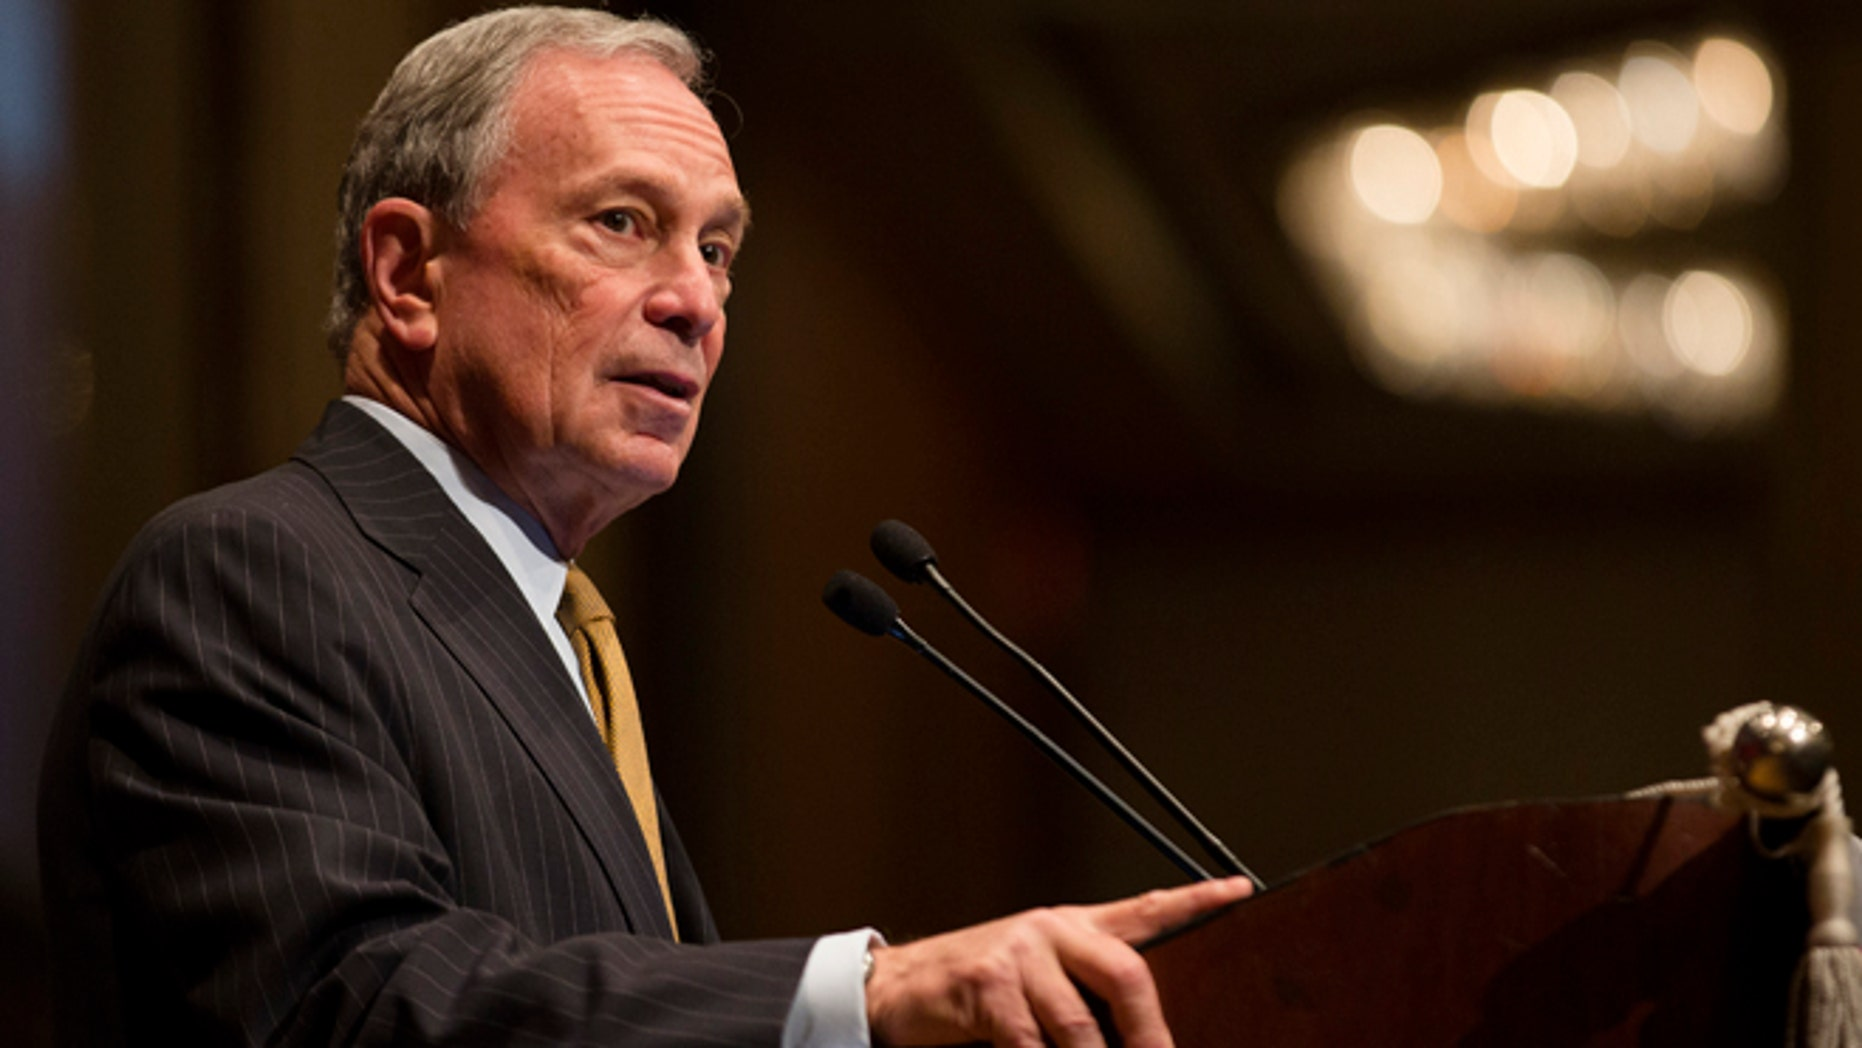 FILE: May 30, 2013: Mayor Michael Bloomberg speaks at the Real Estate Board of New York, in New York.